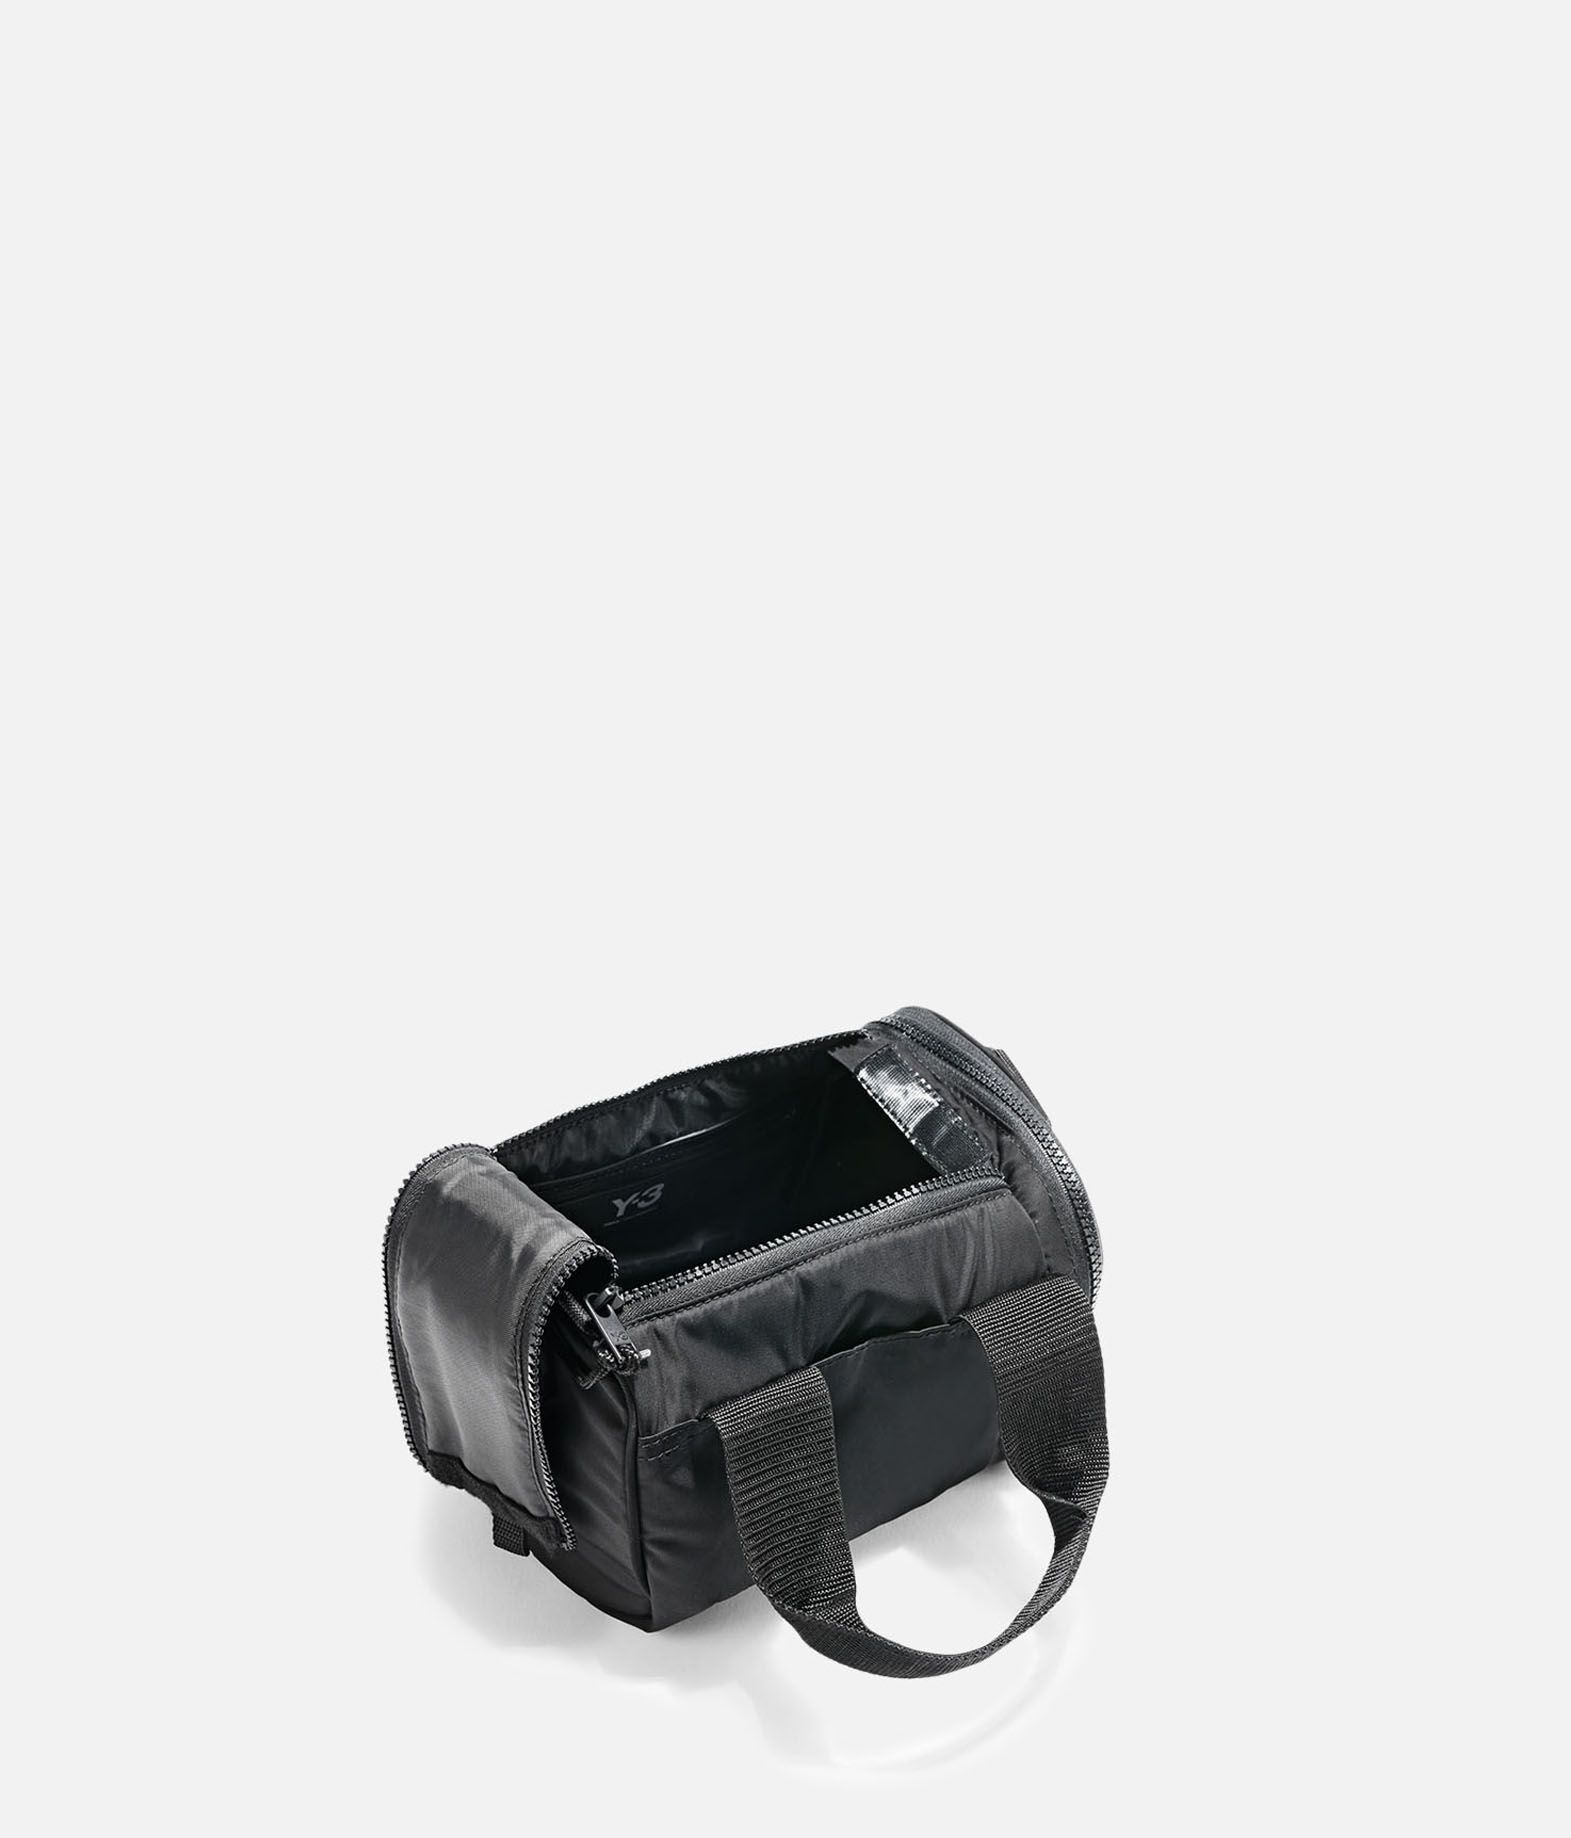 Y-3 Y-3 Mini Bag Small fabric bag E e